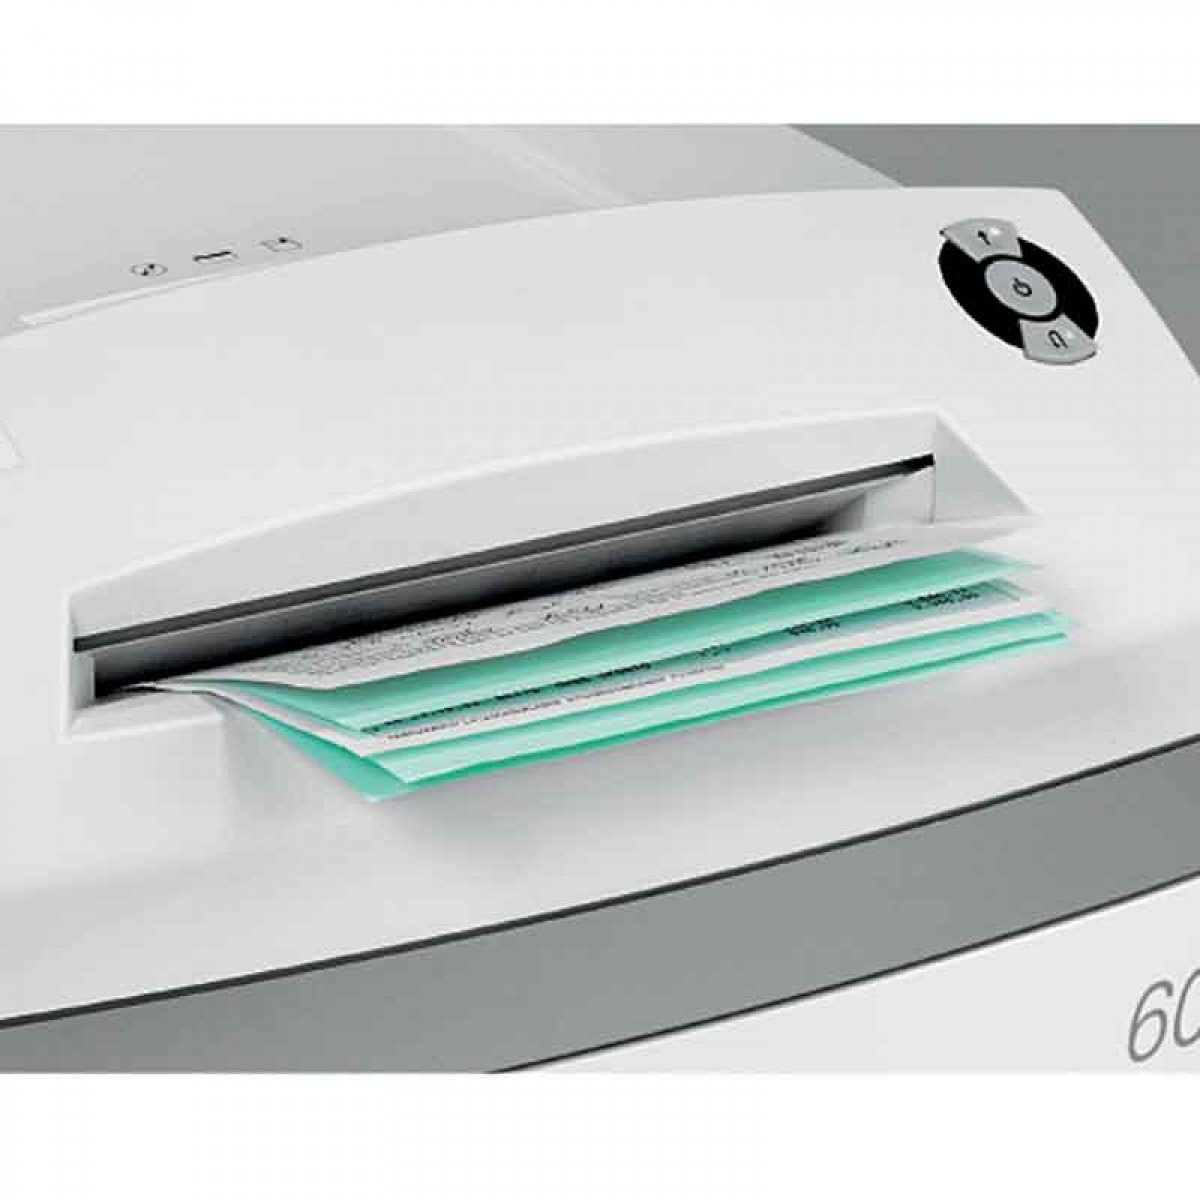 Intimus 120cc6 Security Shredder Cd Or Oiler 227294s1